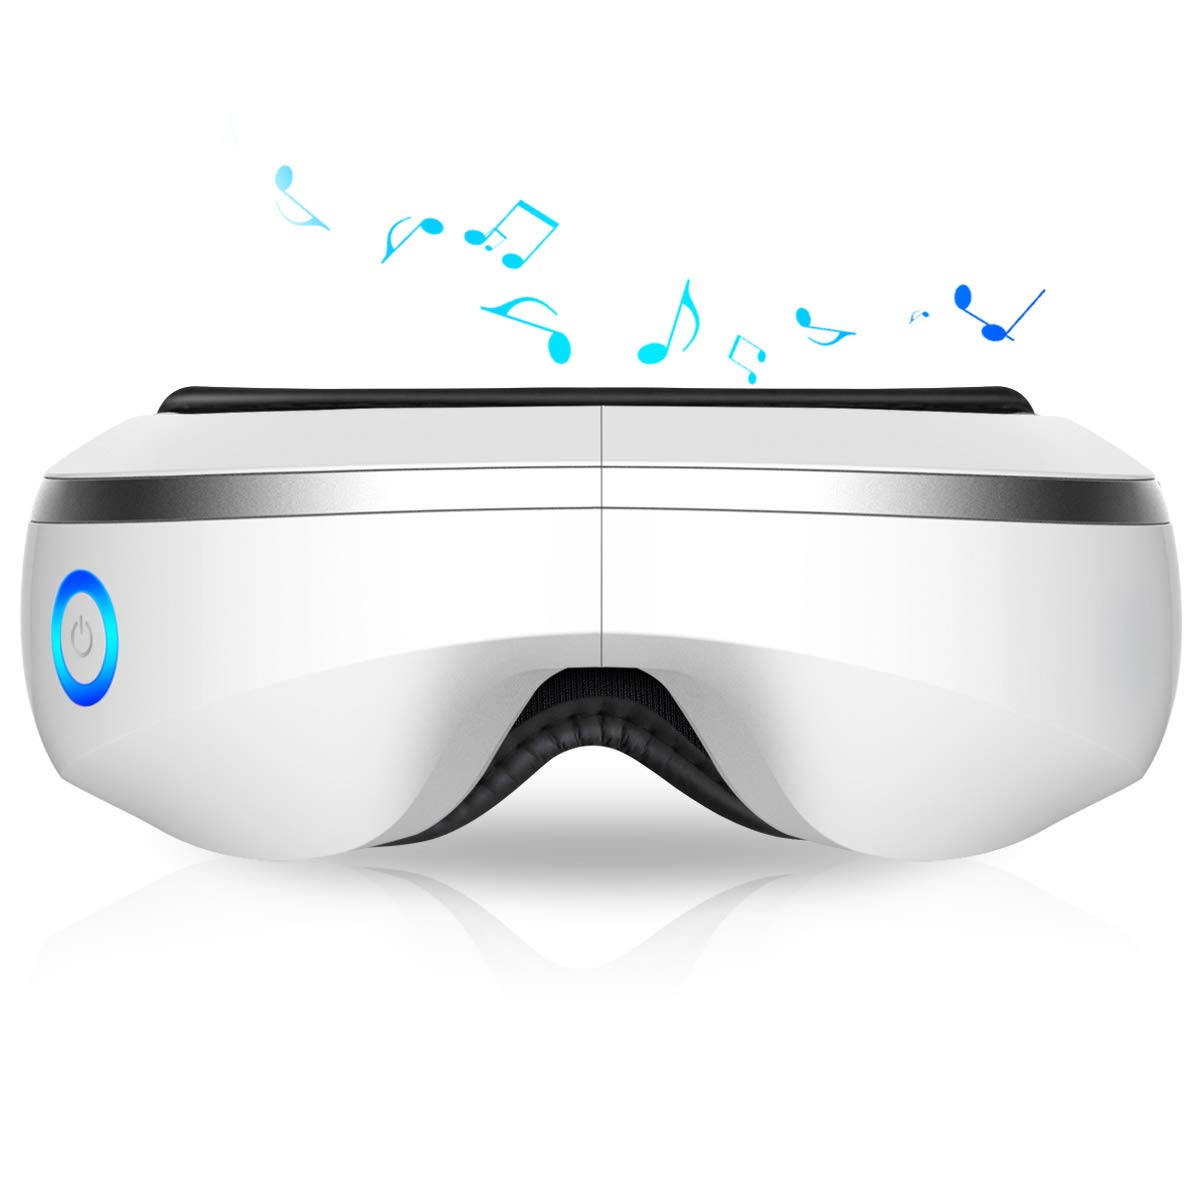 OYOCO-Eye-Massager-with-Heat-Music,Vibration,Air Pressure Electric Portable Shiatsu Massager for Dry Eyes Eyestrain Temple Headaches Fatigue Relief Great Gift Idea (White)